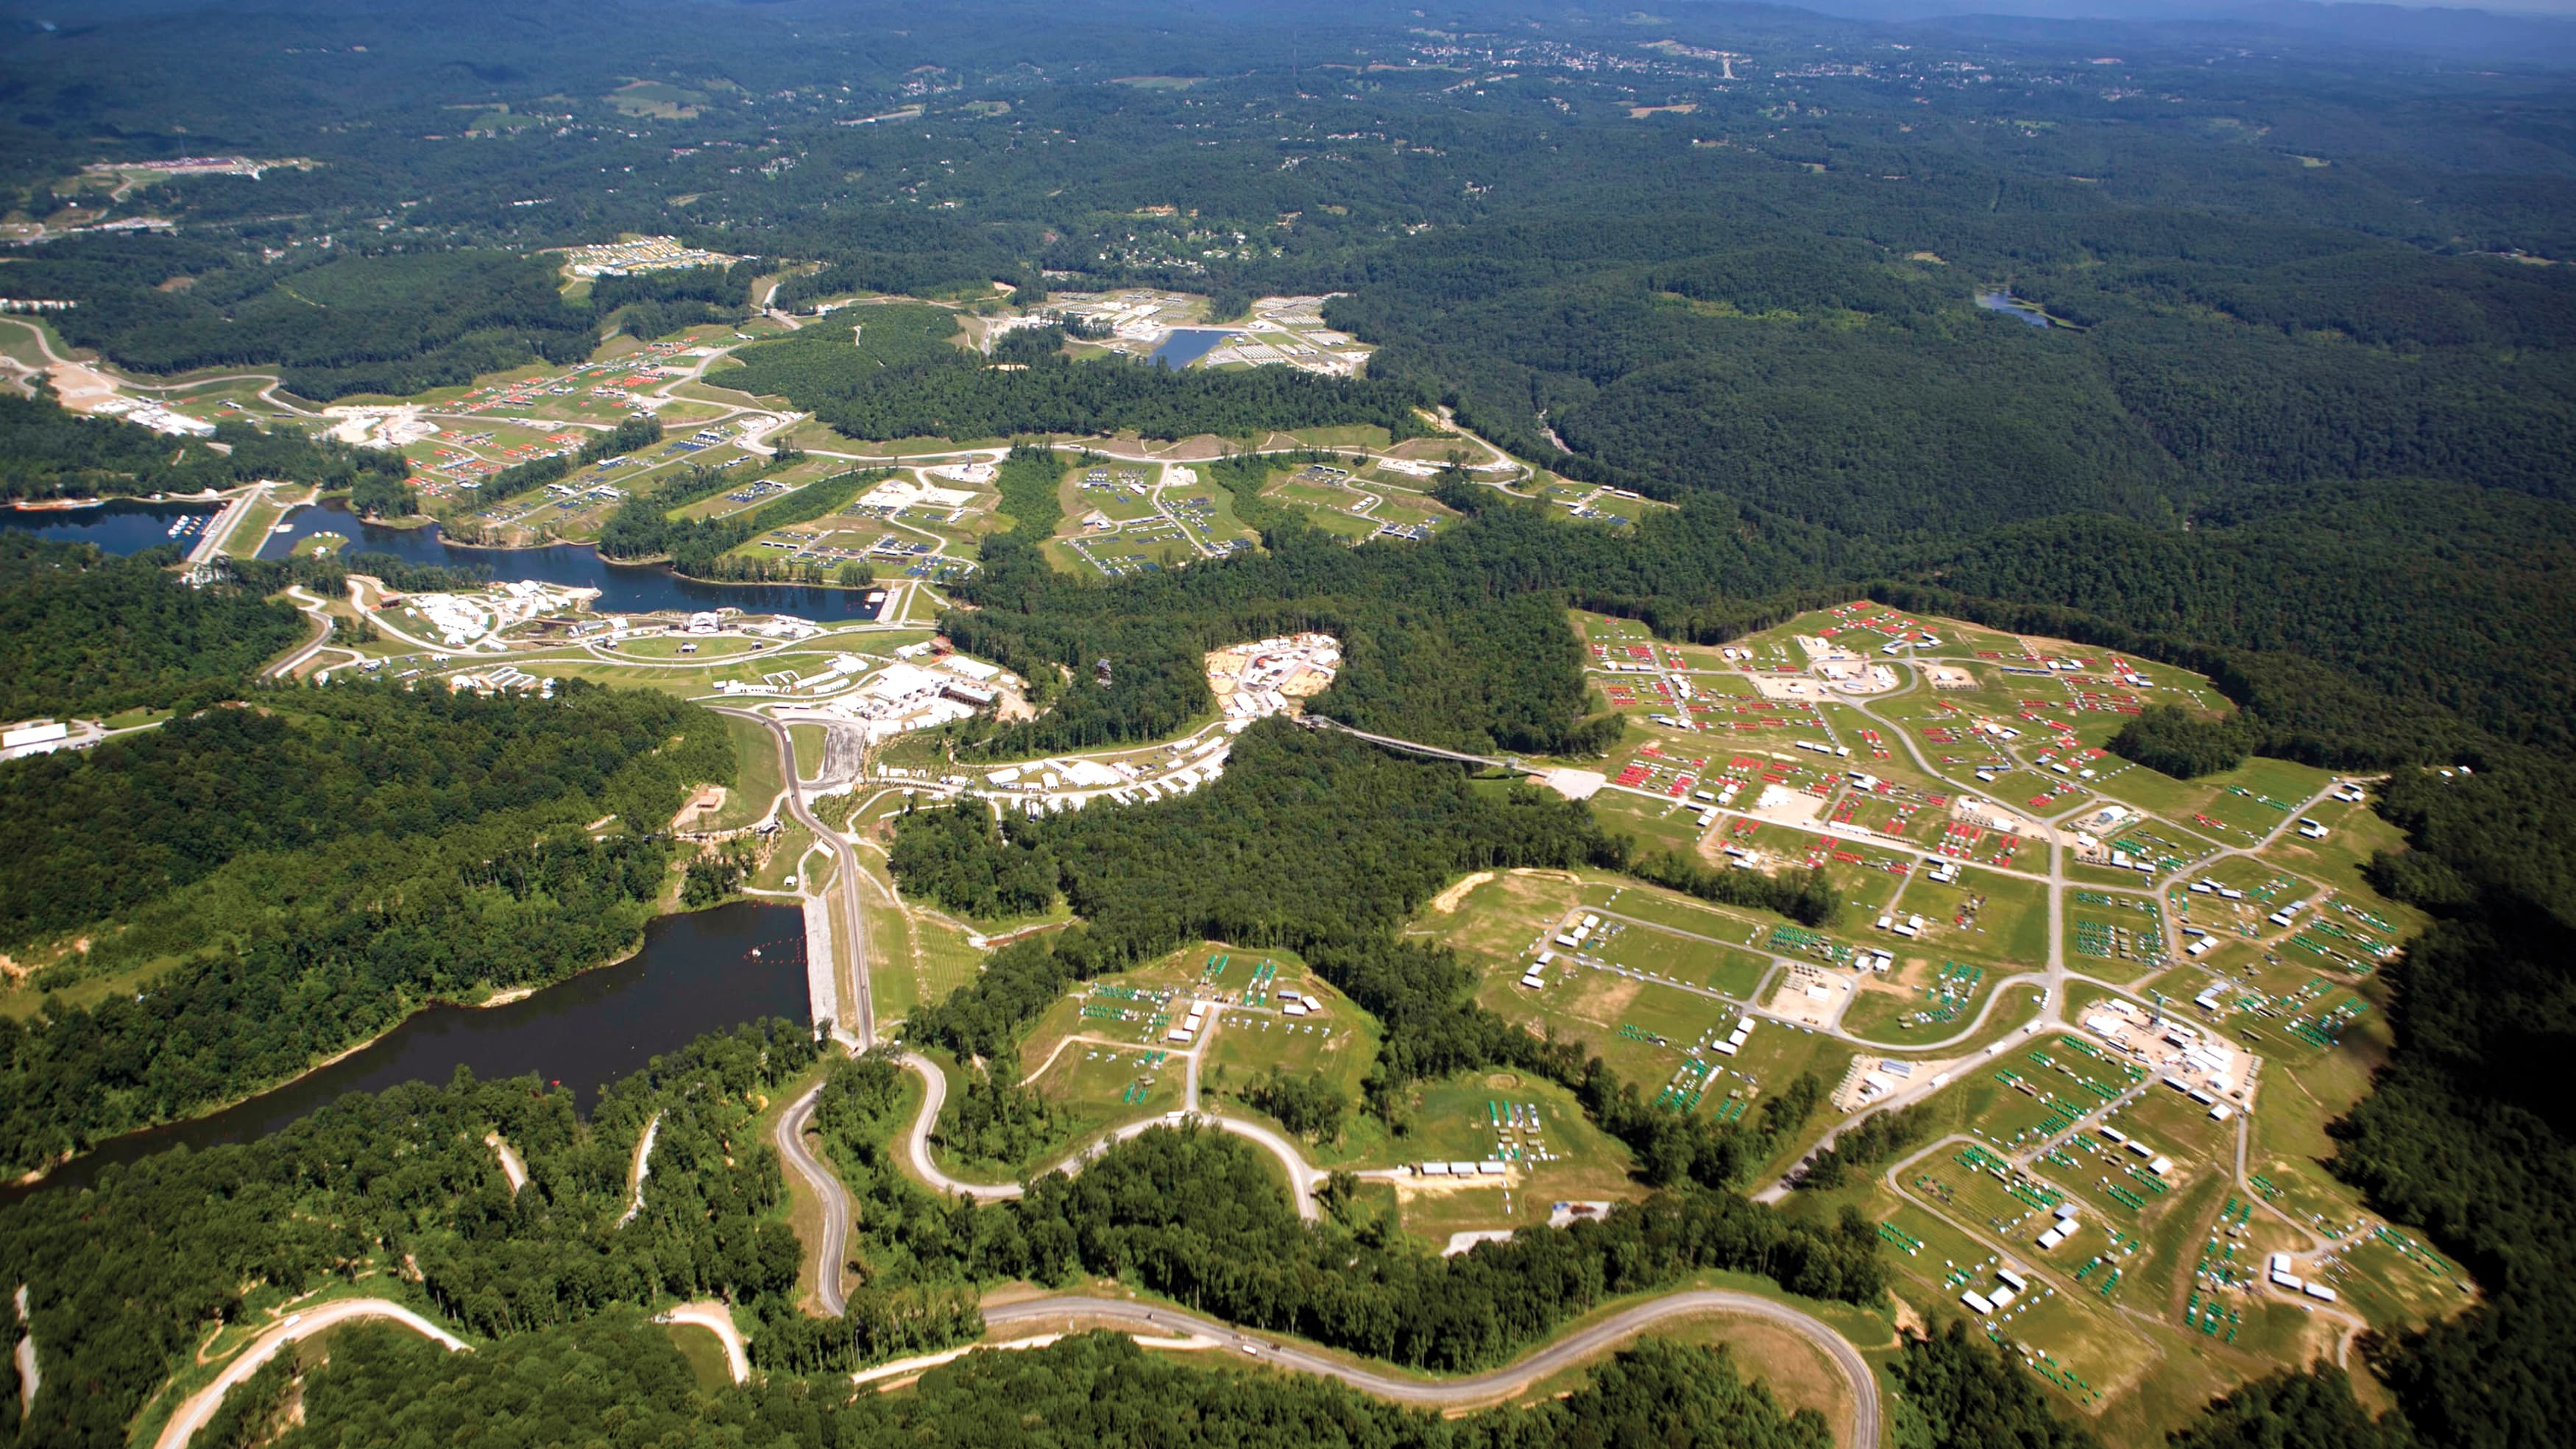 Overhead view of the whole Summit Bechtel Reserve Boy Scouts of America Jamboree site in West Virgina